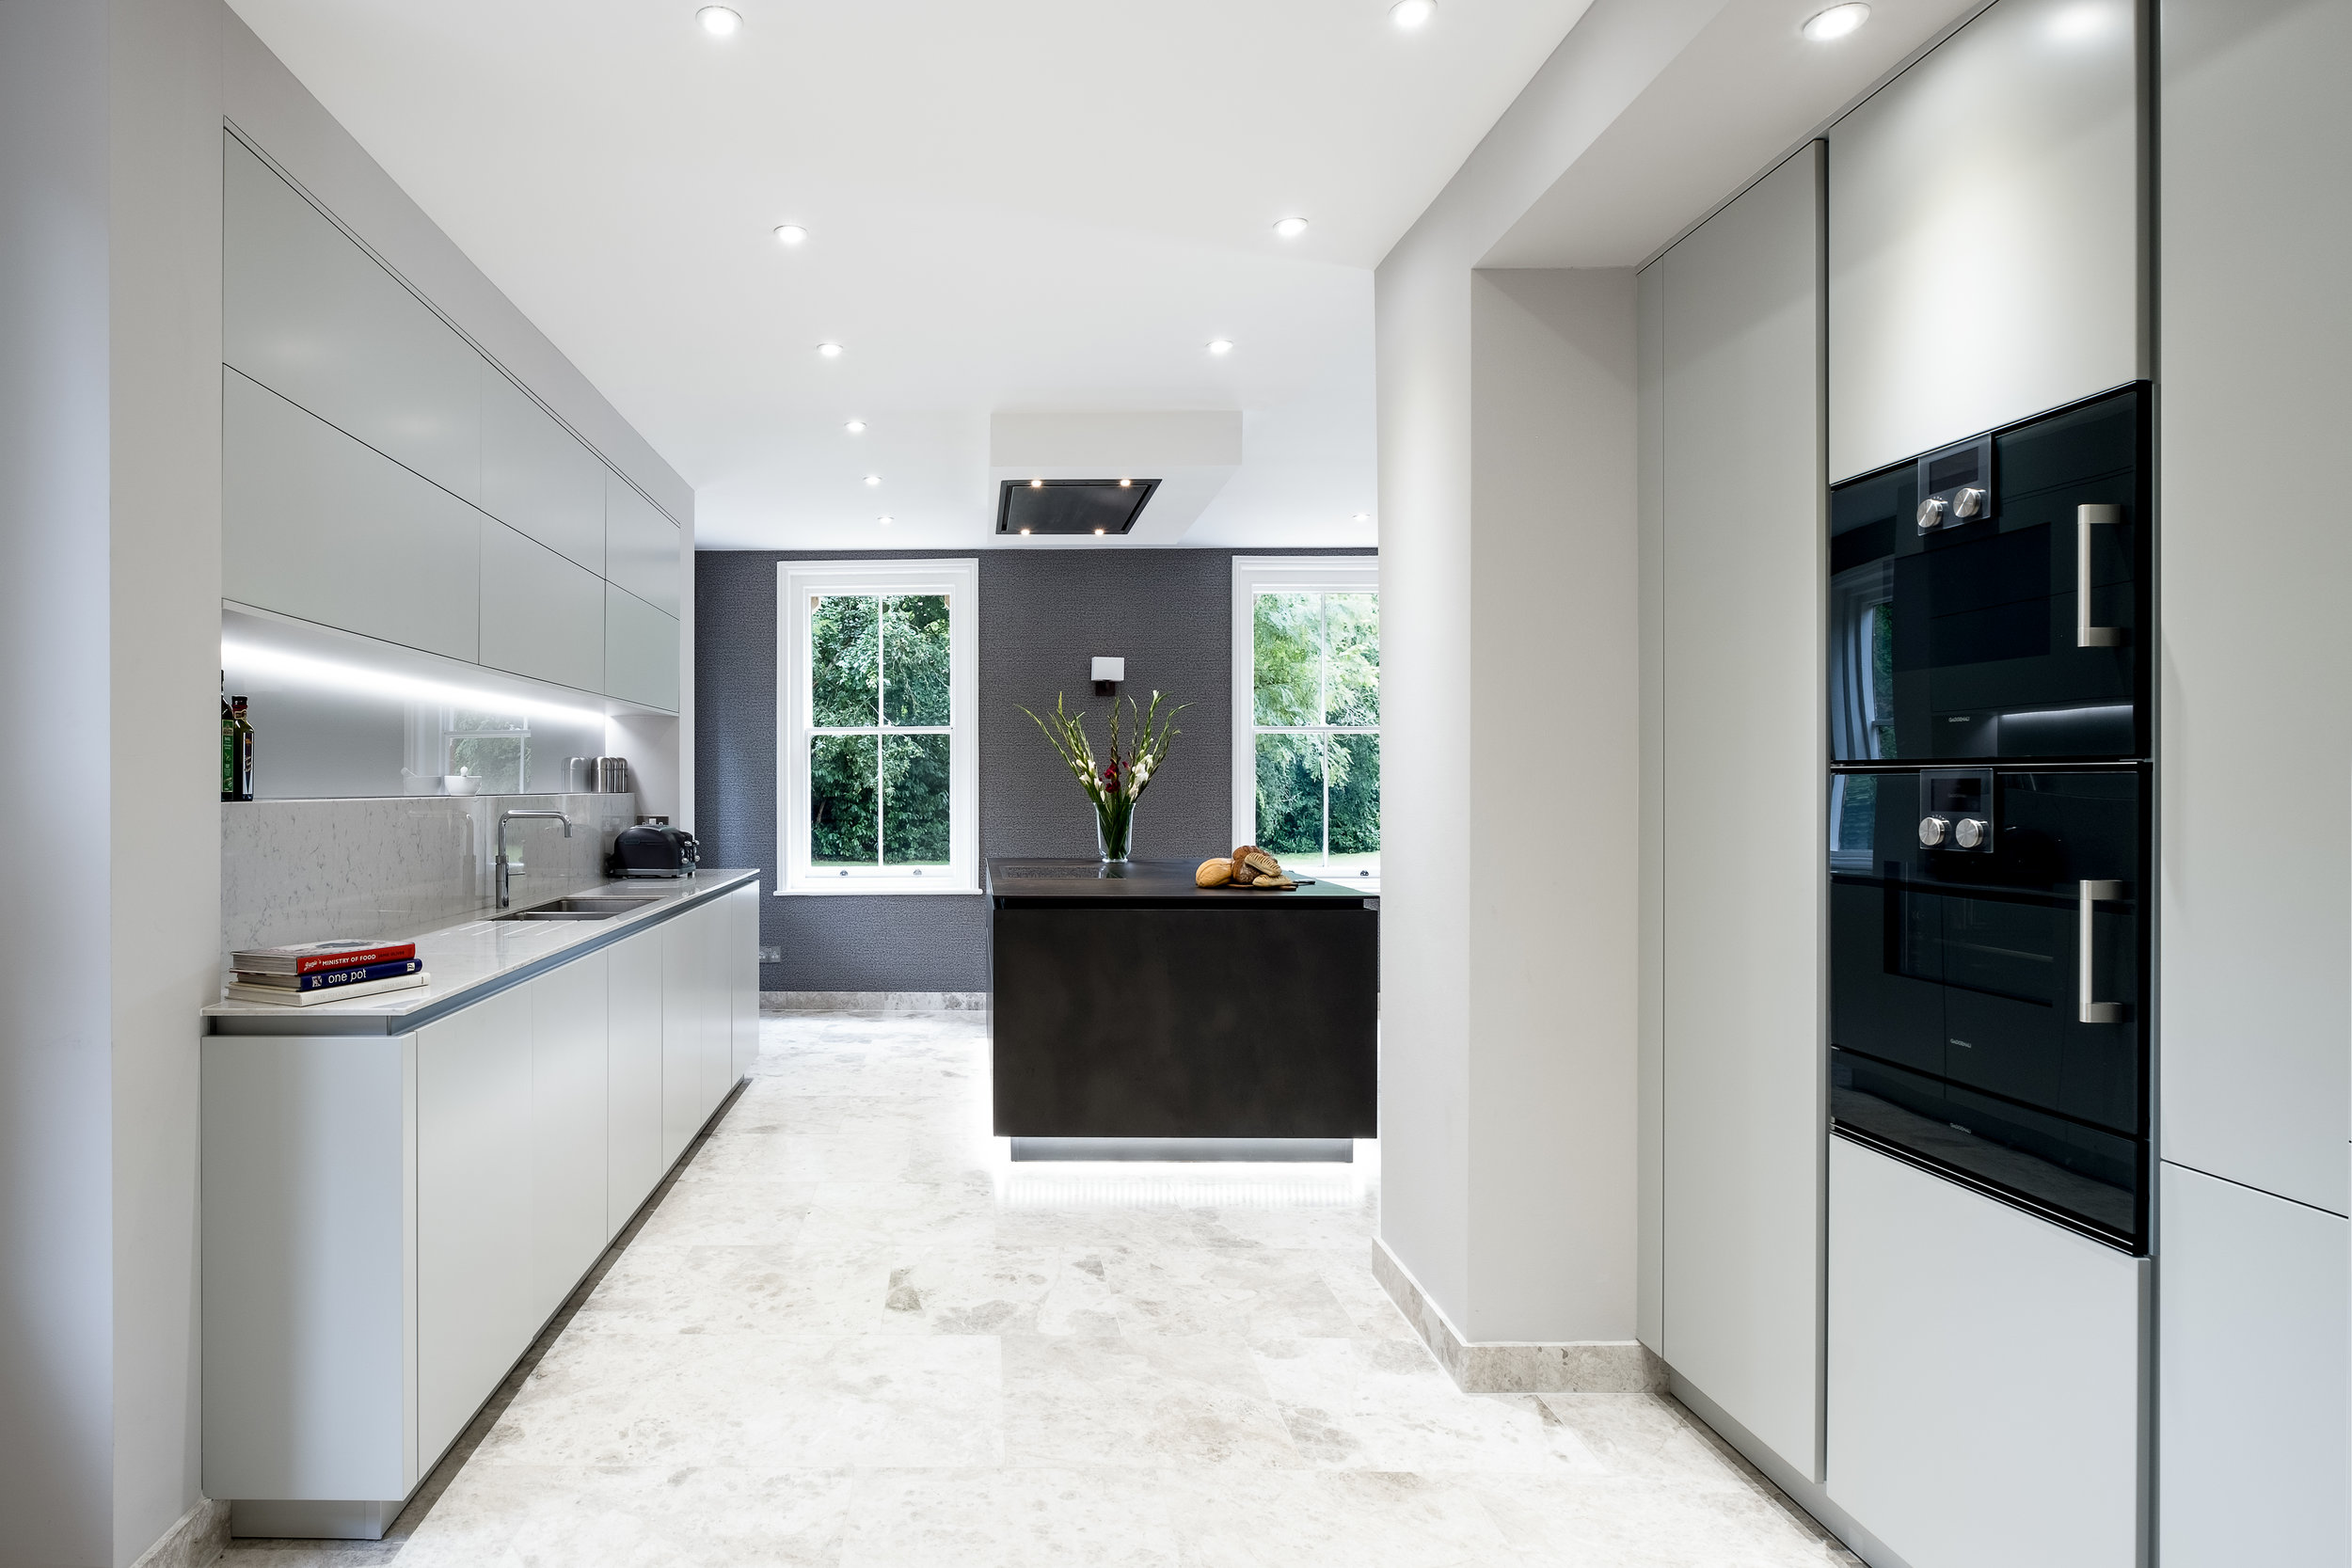 Contour Latest News from Contour kitchens